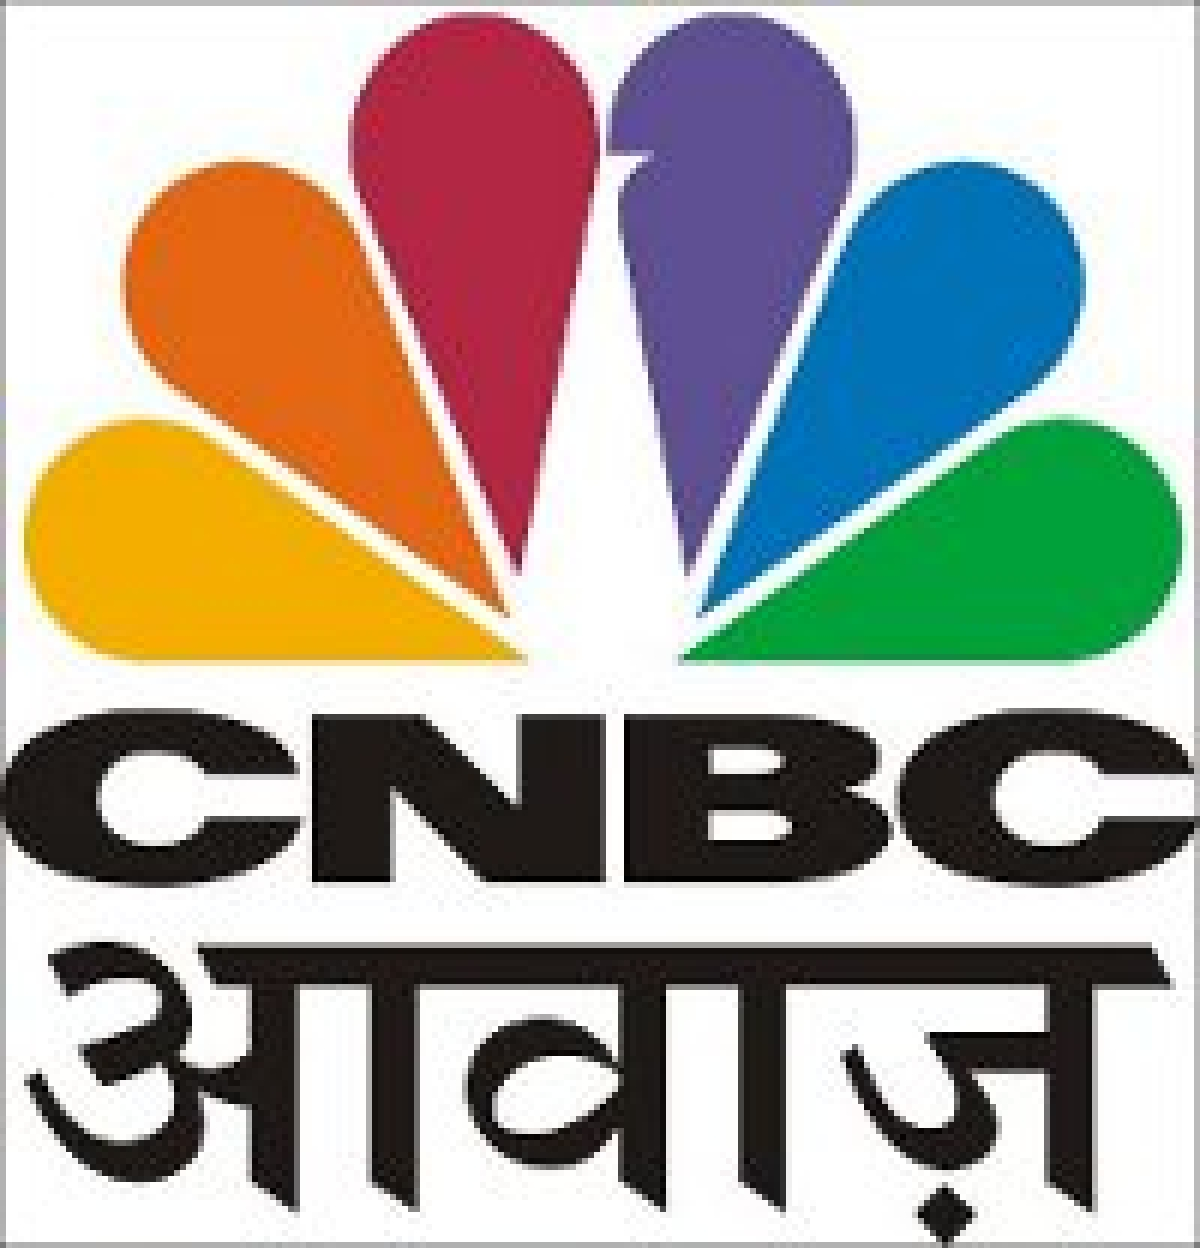 CNBC Awaaz celebrates 7 years with a new campaign